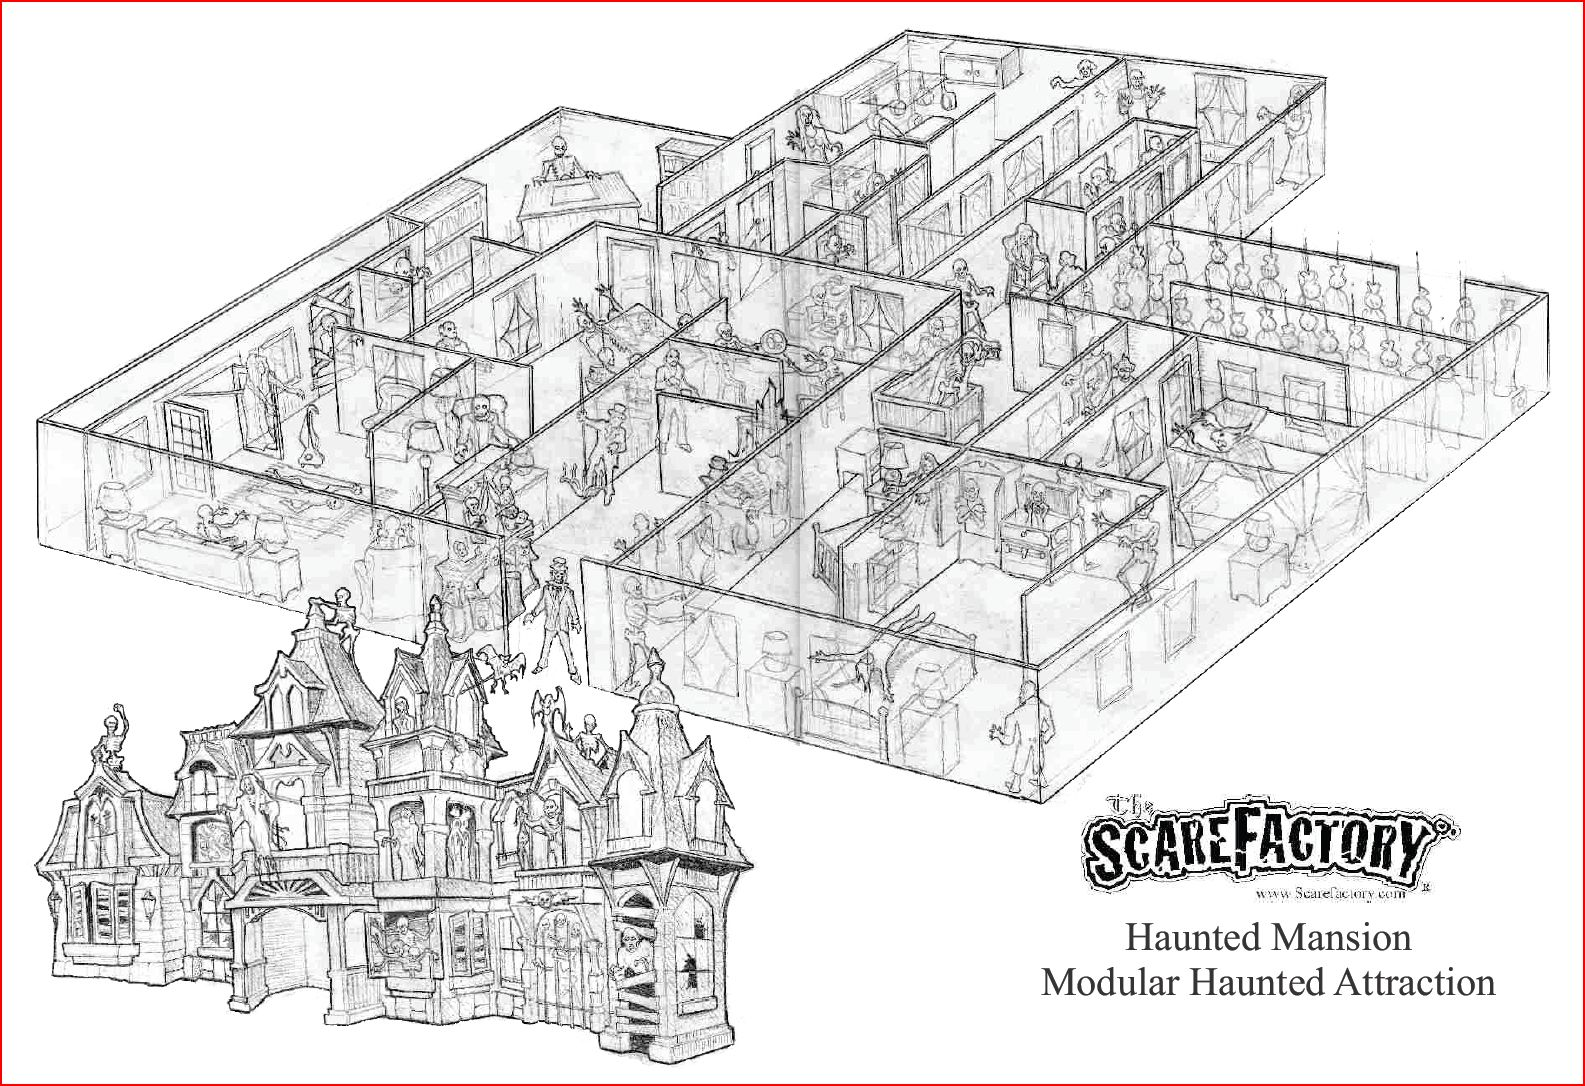 Attraction Design Services Haunted Mansion The Scarefactory